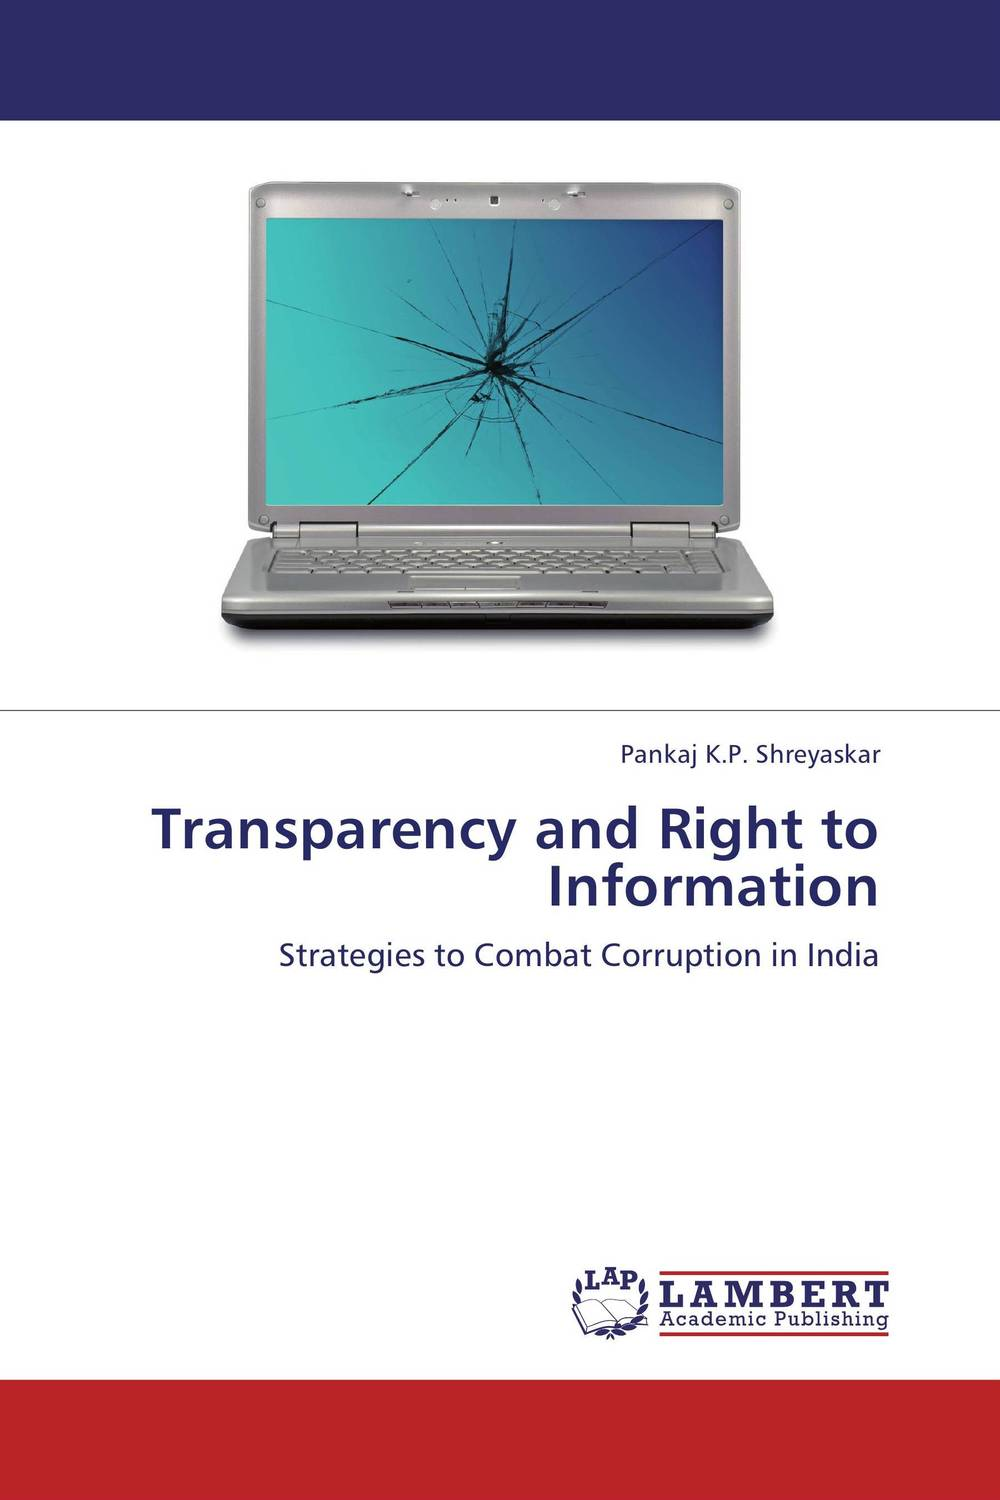 Transparency and Right to Information